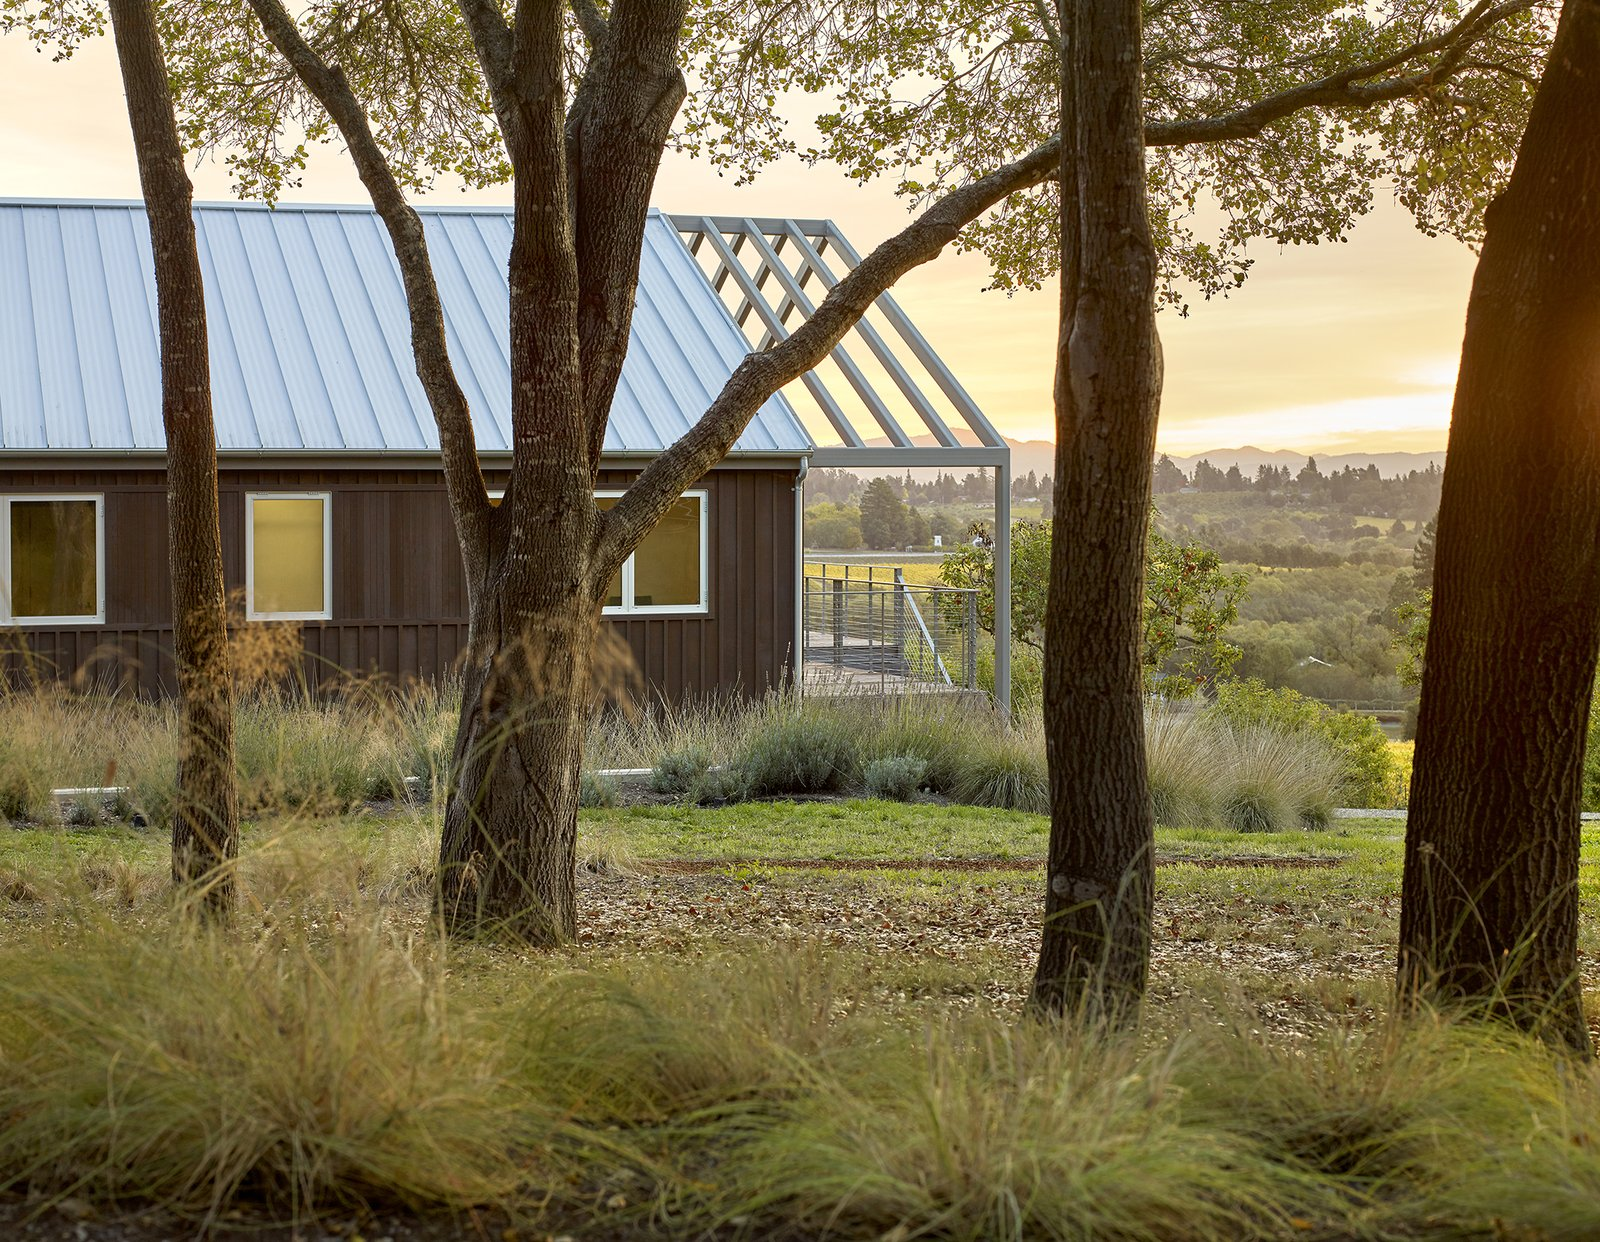 Exterior, House Building Type, Gable RoofLine, Farmhouse Building Type, Metal Roof Material, Wood Siding Material, and Metal Siding Material Orchard House Exterior  Orchard House by Cary Bernstein Architect